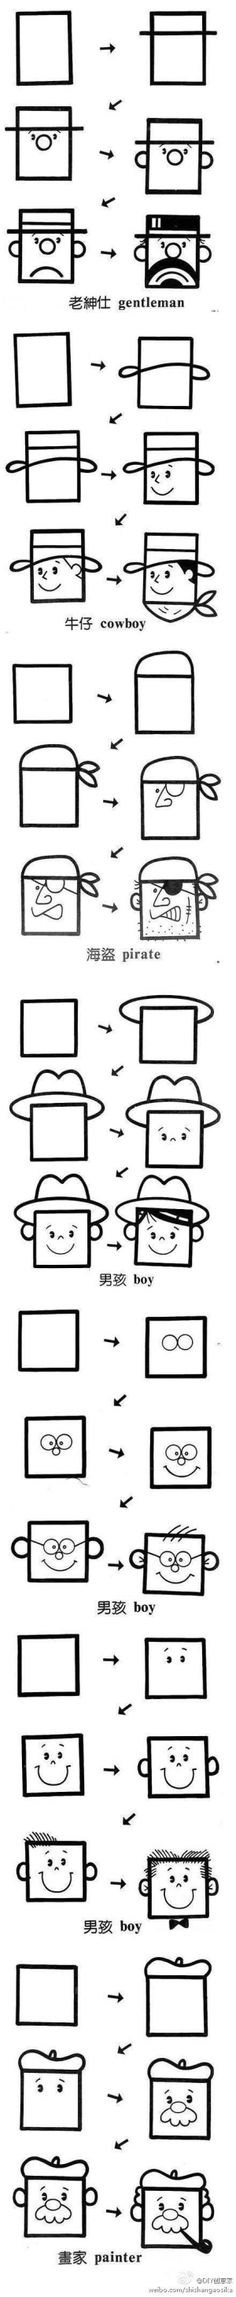 How to draw square faces. by Contagious